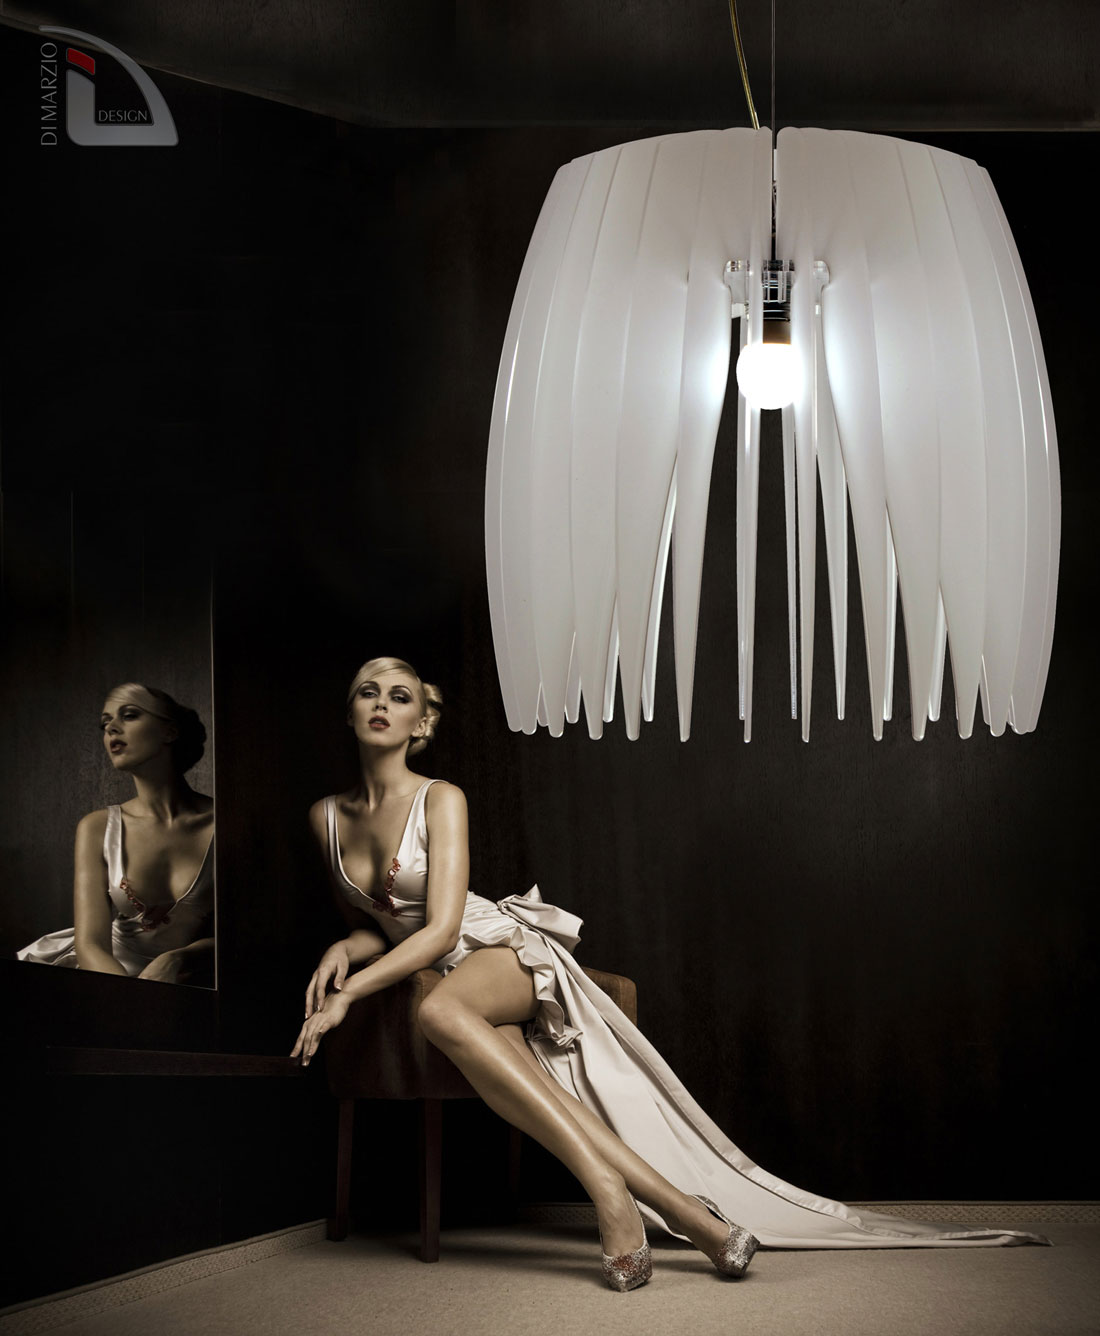 Hydra pendant lamp by dimarziodesign